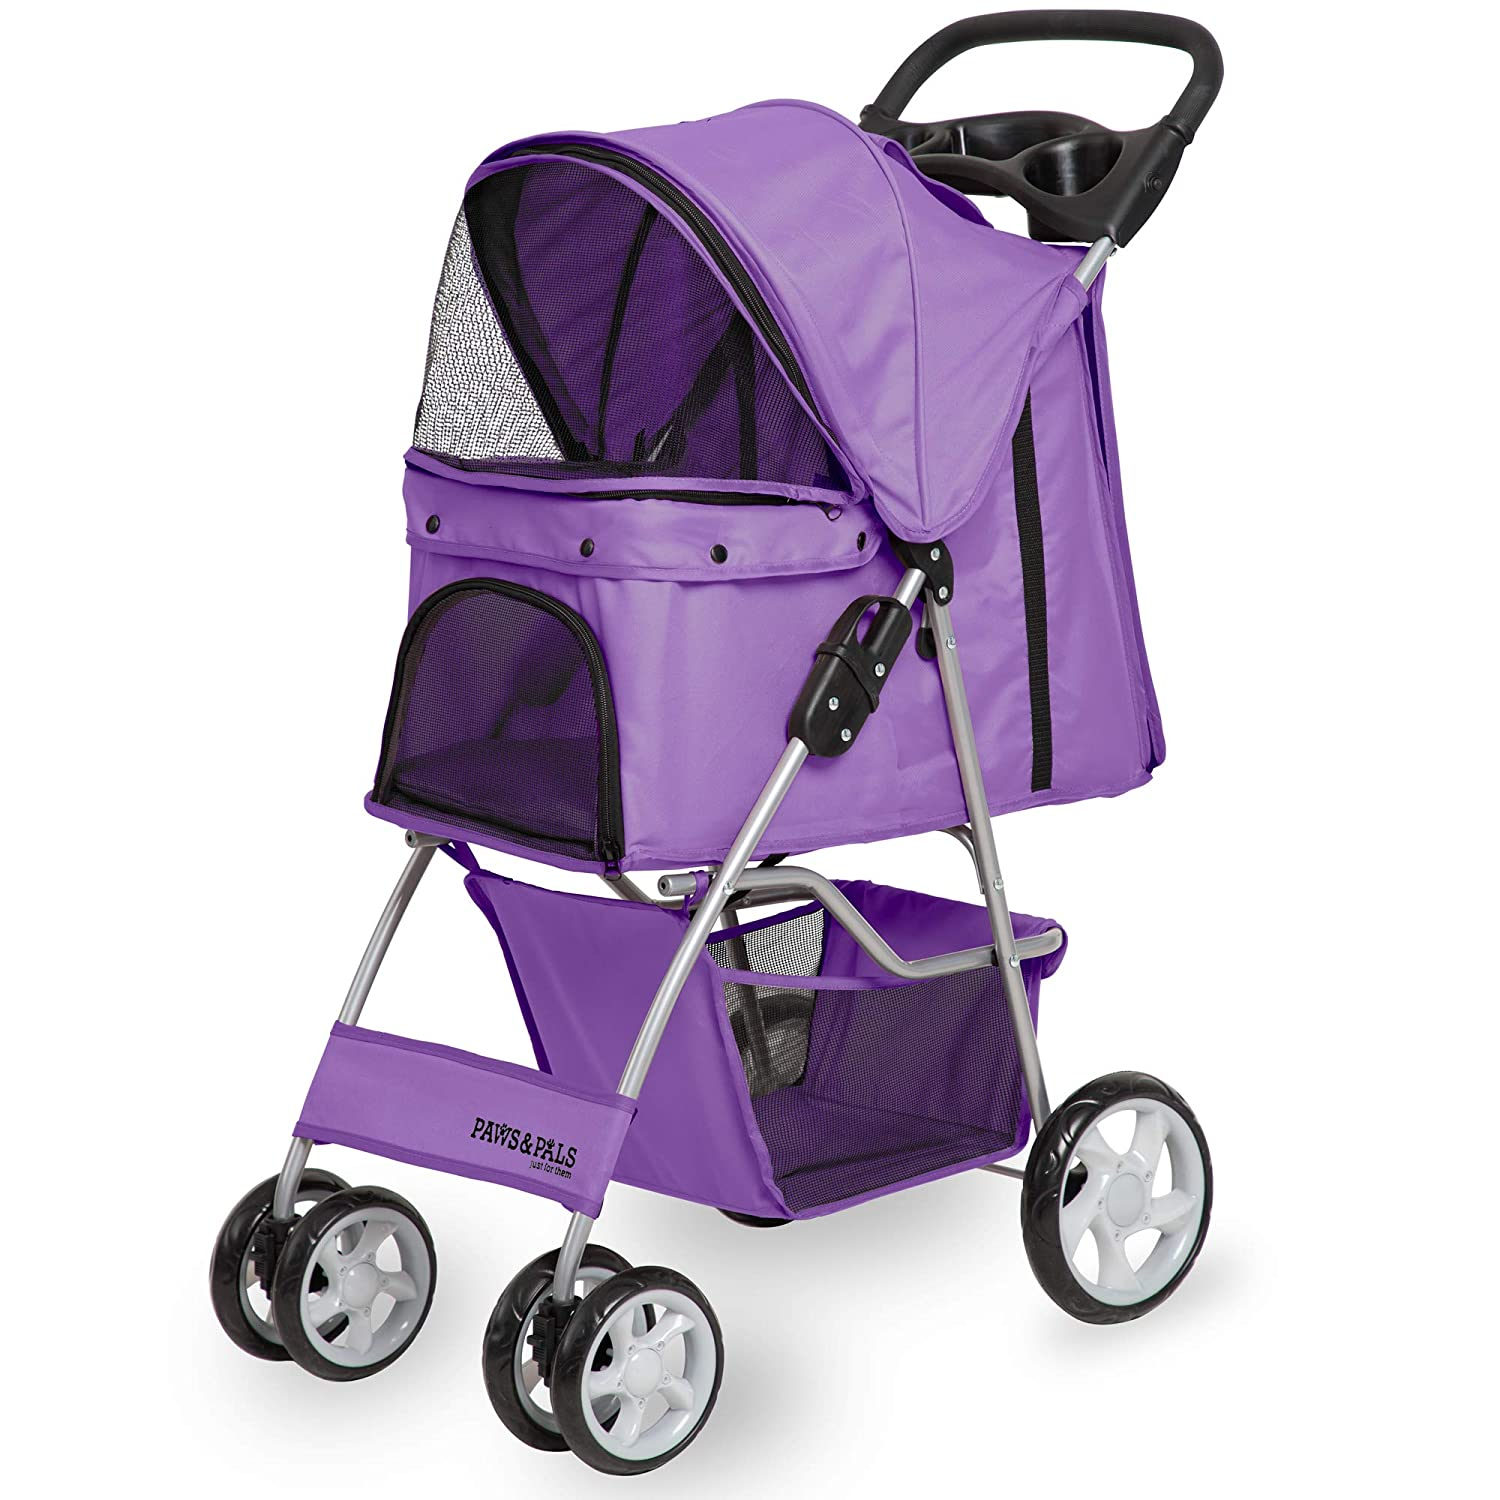 7 Best Dog strollers for Small, Medium and Large Dogs 1